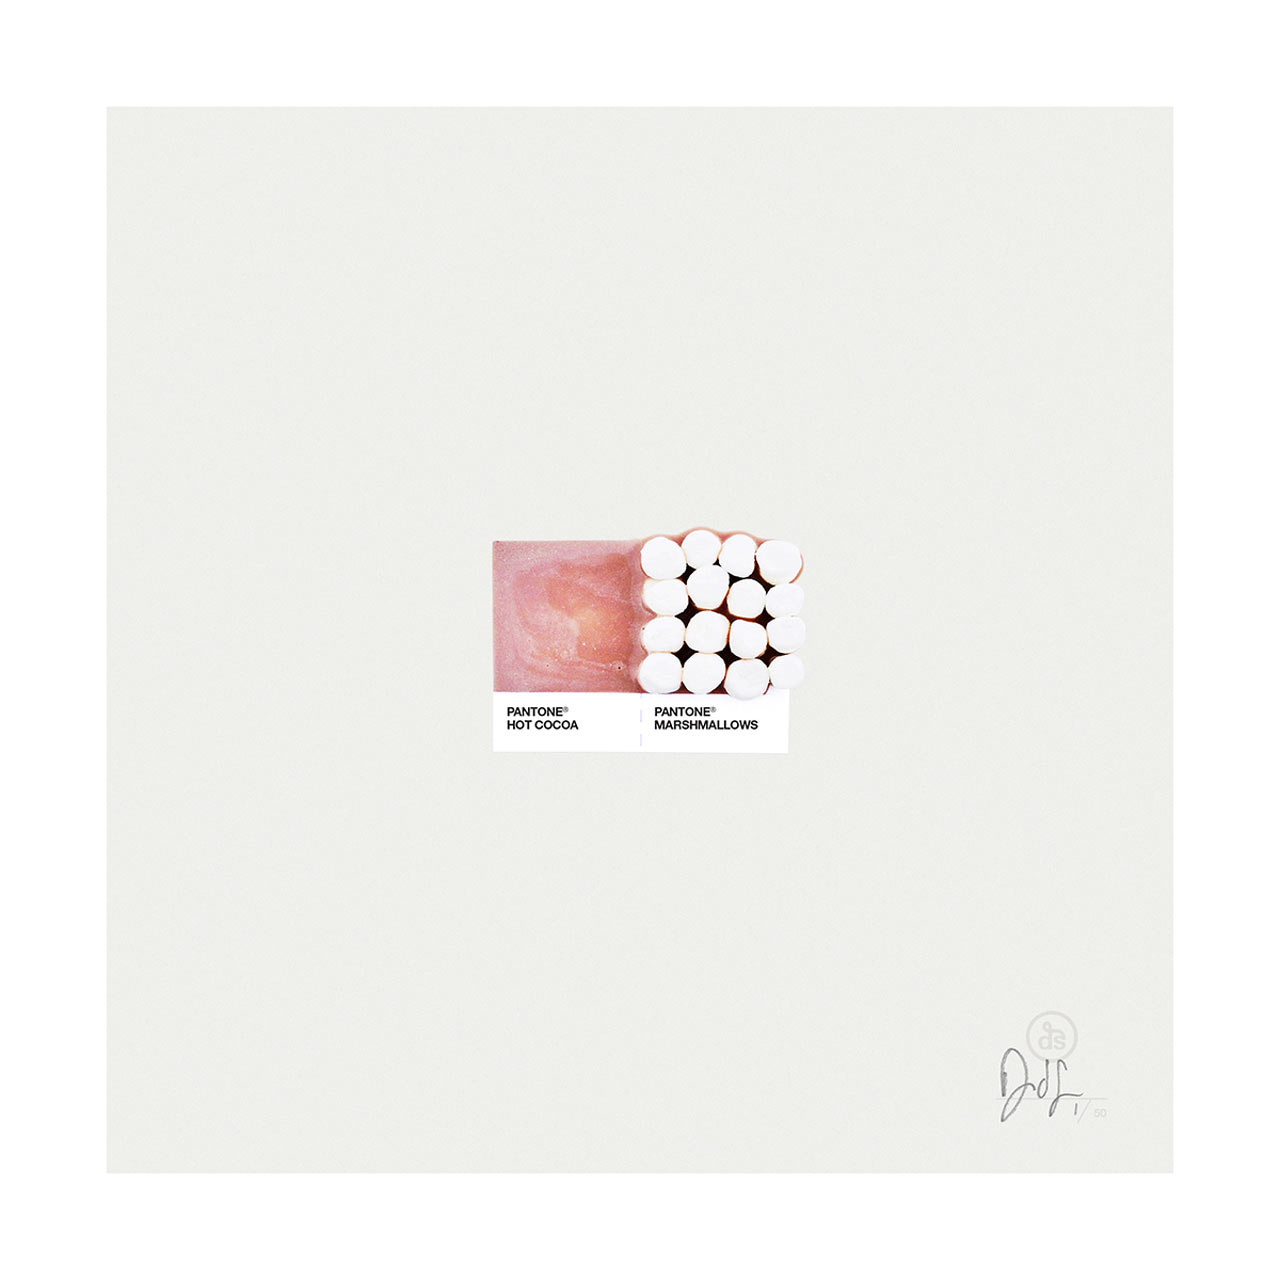 Pantone-Pairings-19_cocoa_marshmallows